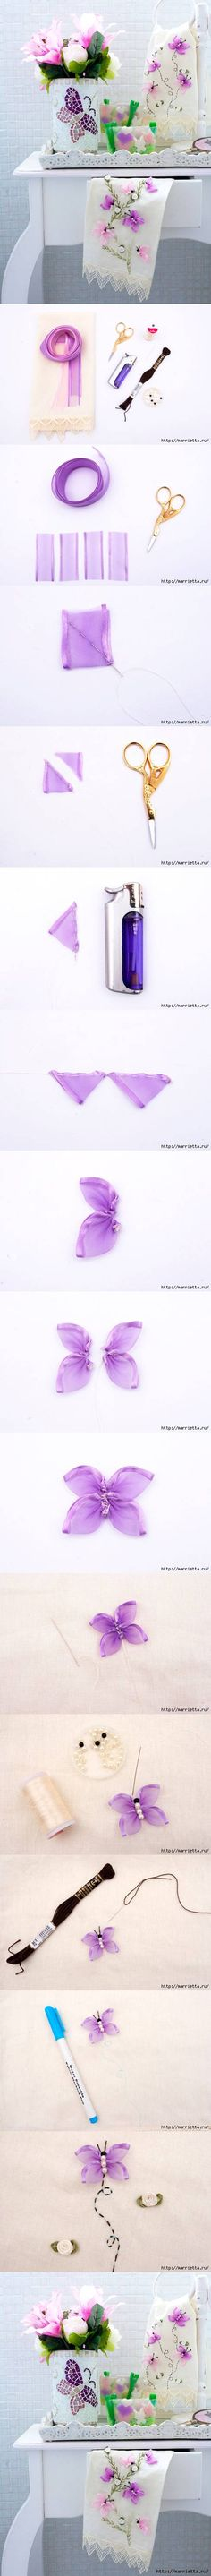 DIY Beautiful Embroidered Ribbon Butterfly | iCreativeIdeas.com LIKE Us on Facebook ==> https://www.facebook.com/icreativeideas